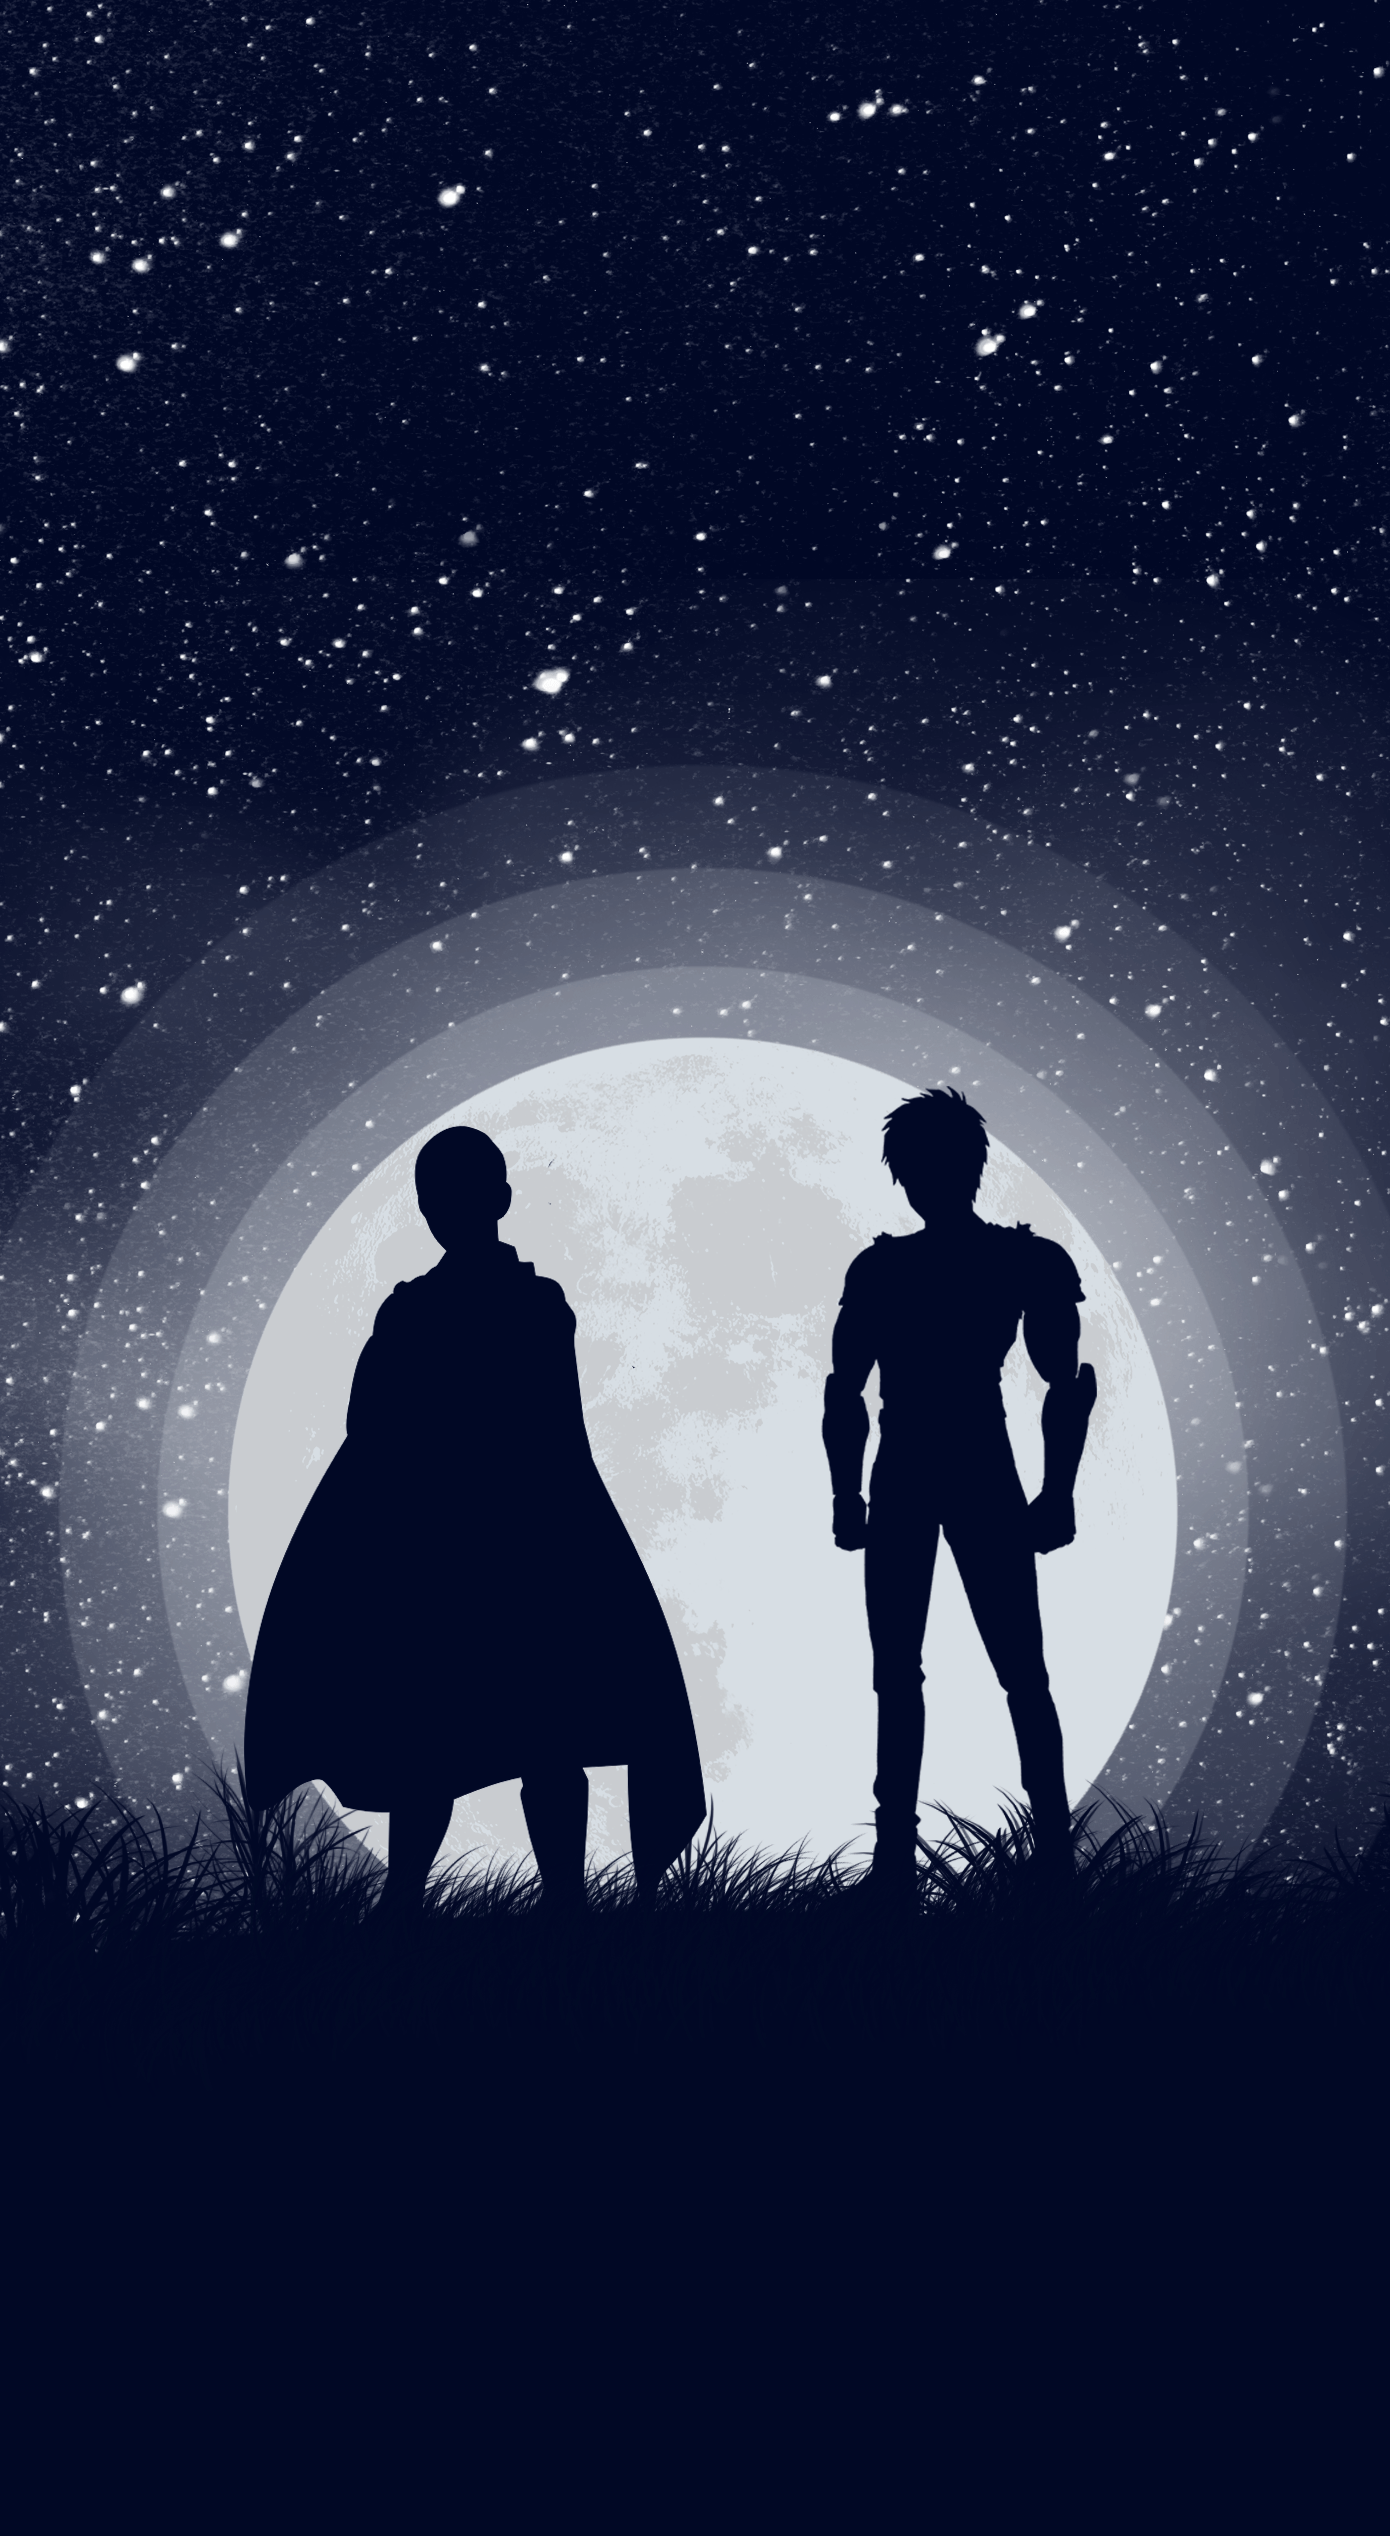 The Hero And The Disciple Wallpaper By Me Ronepunchman